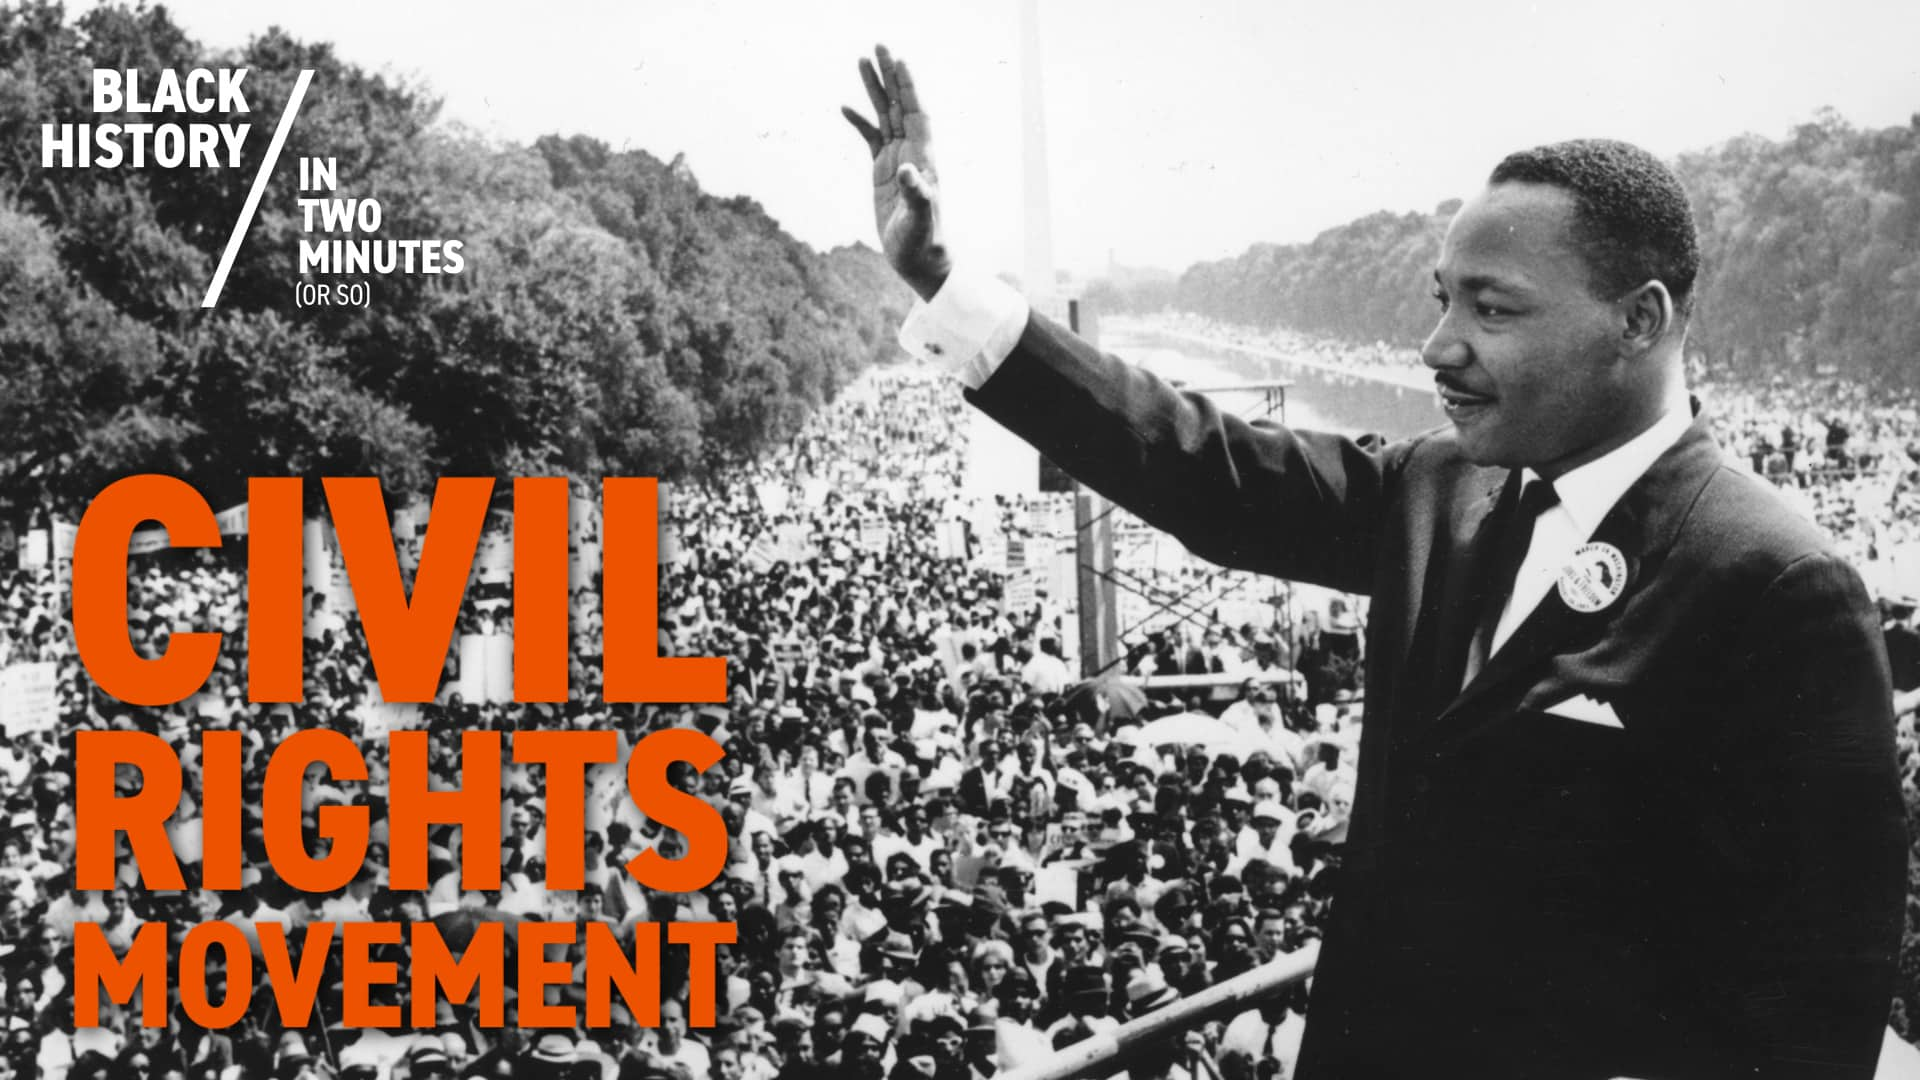 The Civil Rights Movement | Black History in Two Minutes